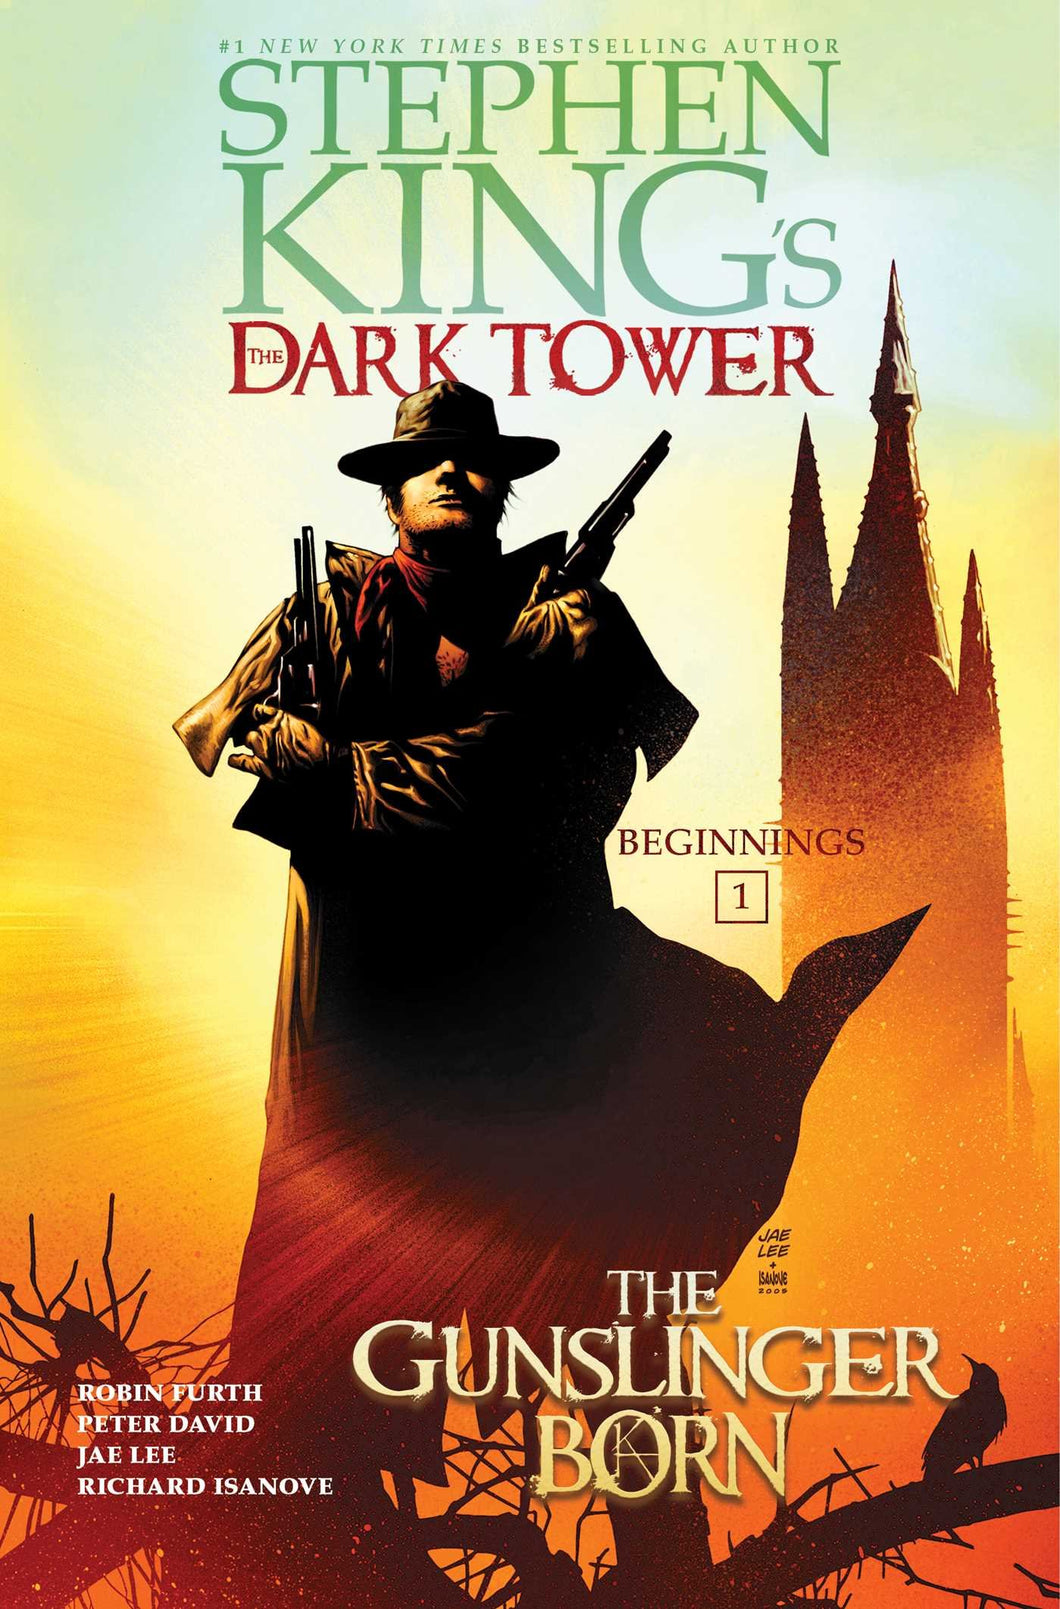 Stephen King's Dark Tower: The Gunslinger Born (TPB) (Hardcover) (2017)